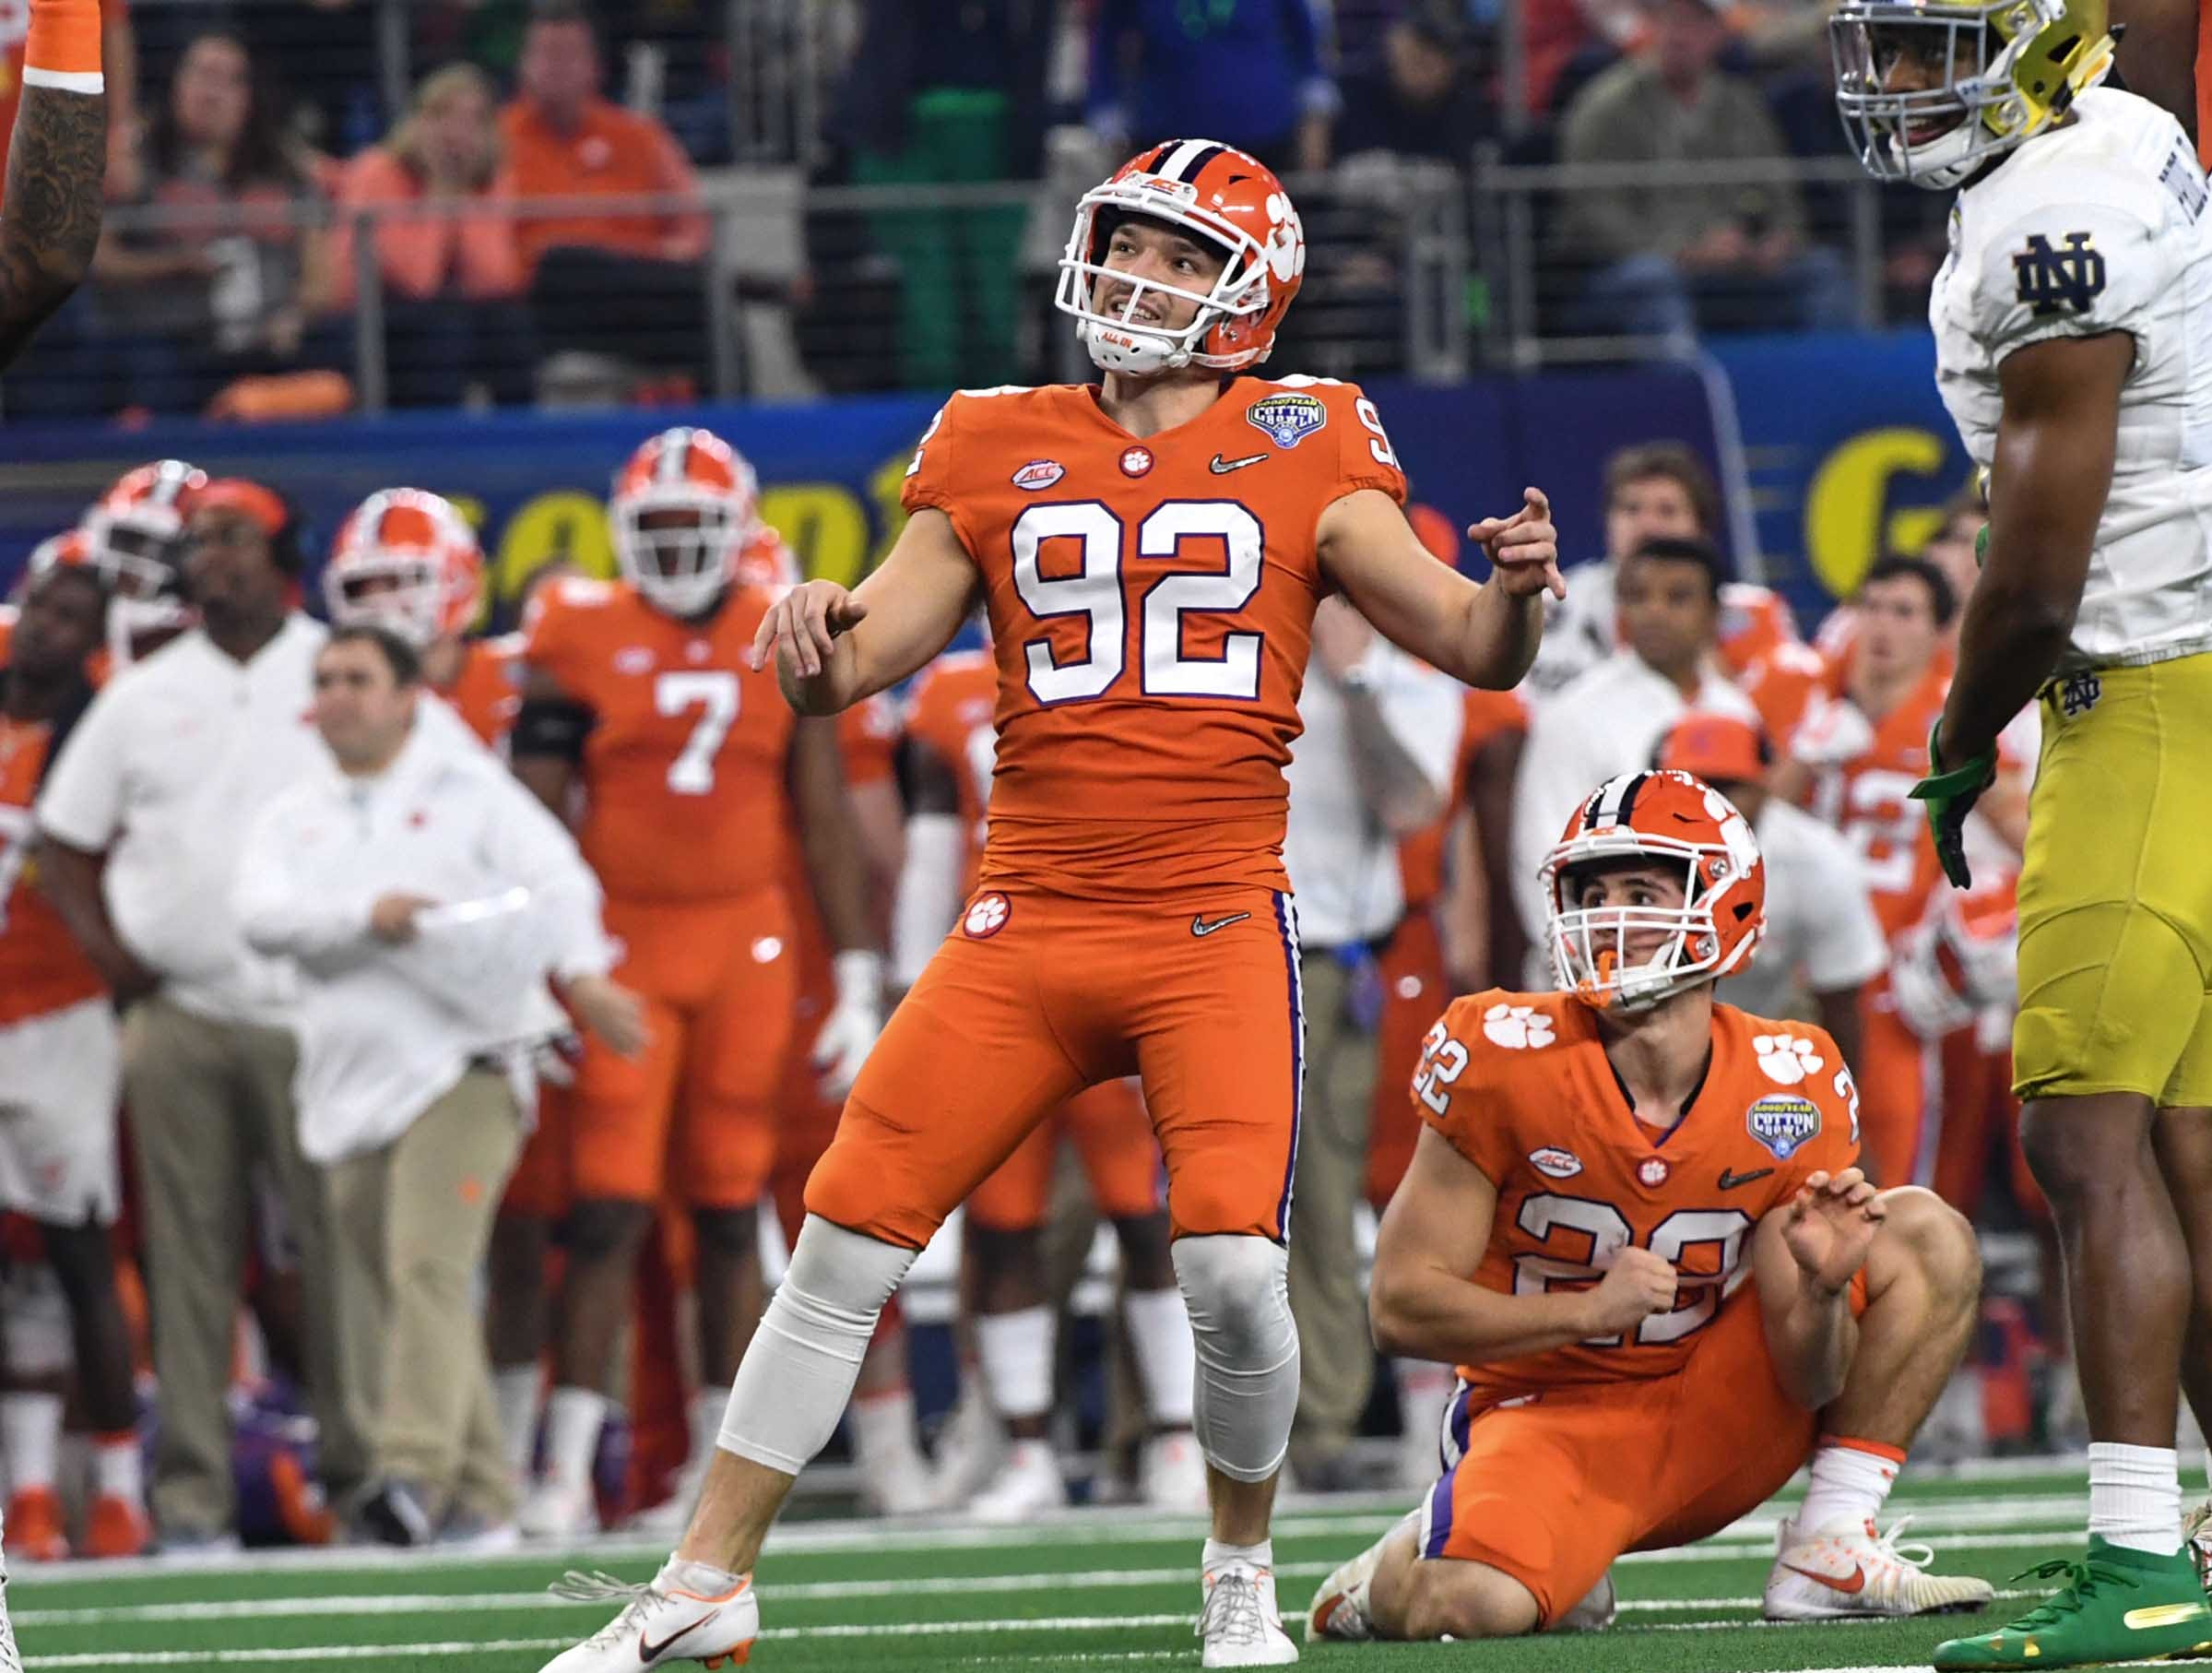 Clemson place kicker Greg Huegel (92) watches a field goal attempt miss during the second quarter of the College Football Playoff Semifinal at the Goodyear Cotton Bowl Classic at AT&T Stadium in Arlington, Texas Saturday, December 29, 2018.